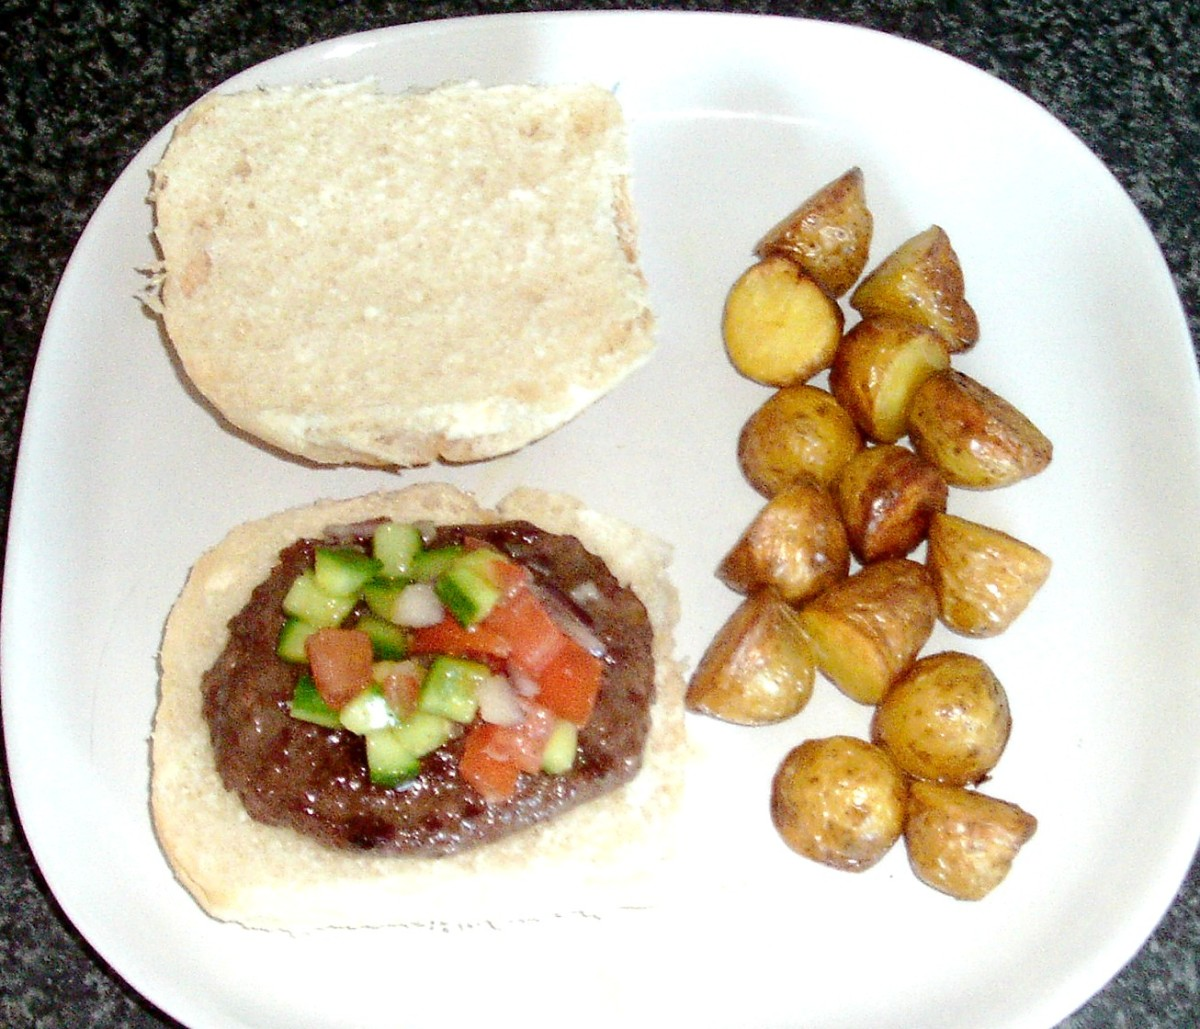 Buffalo and beef burger on a bread roll with spicy salsa and mini roast potatoes